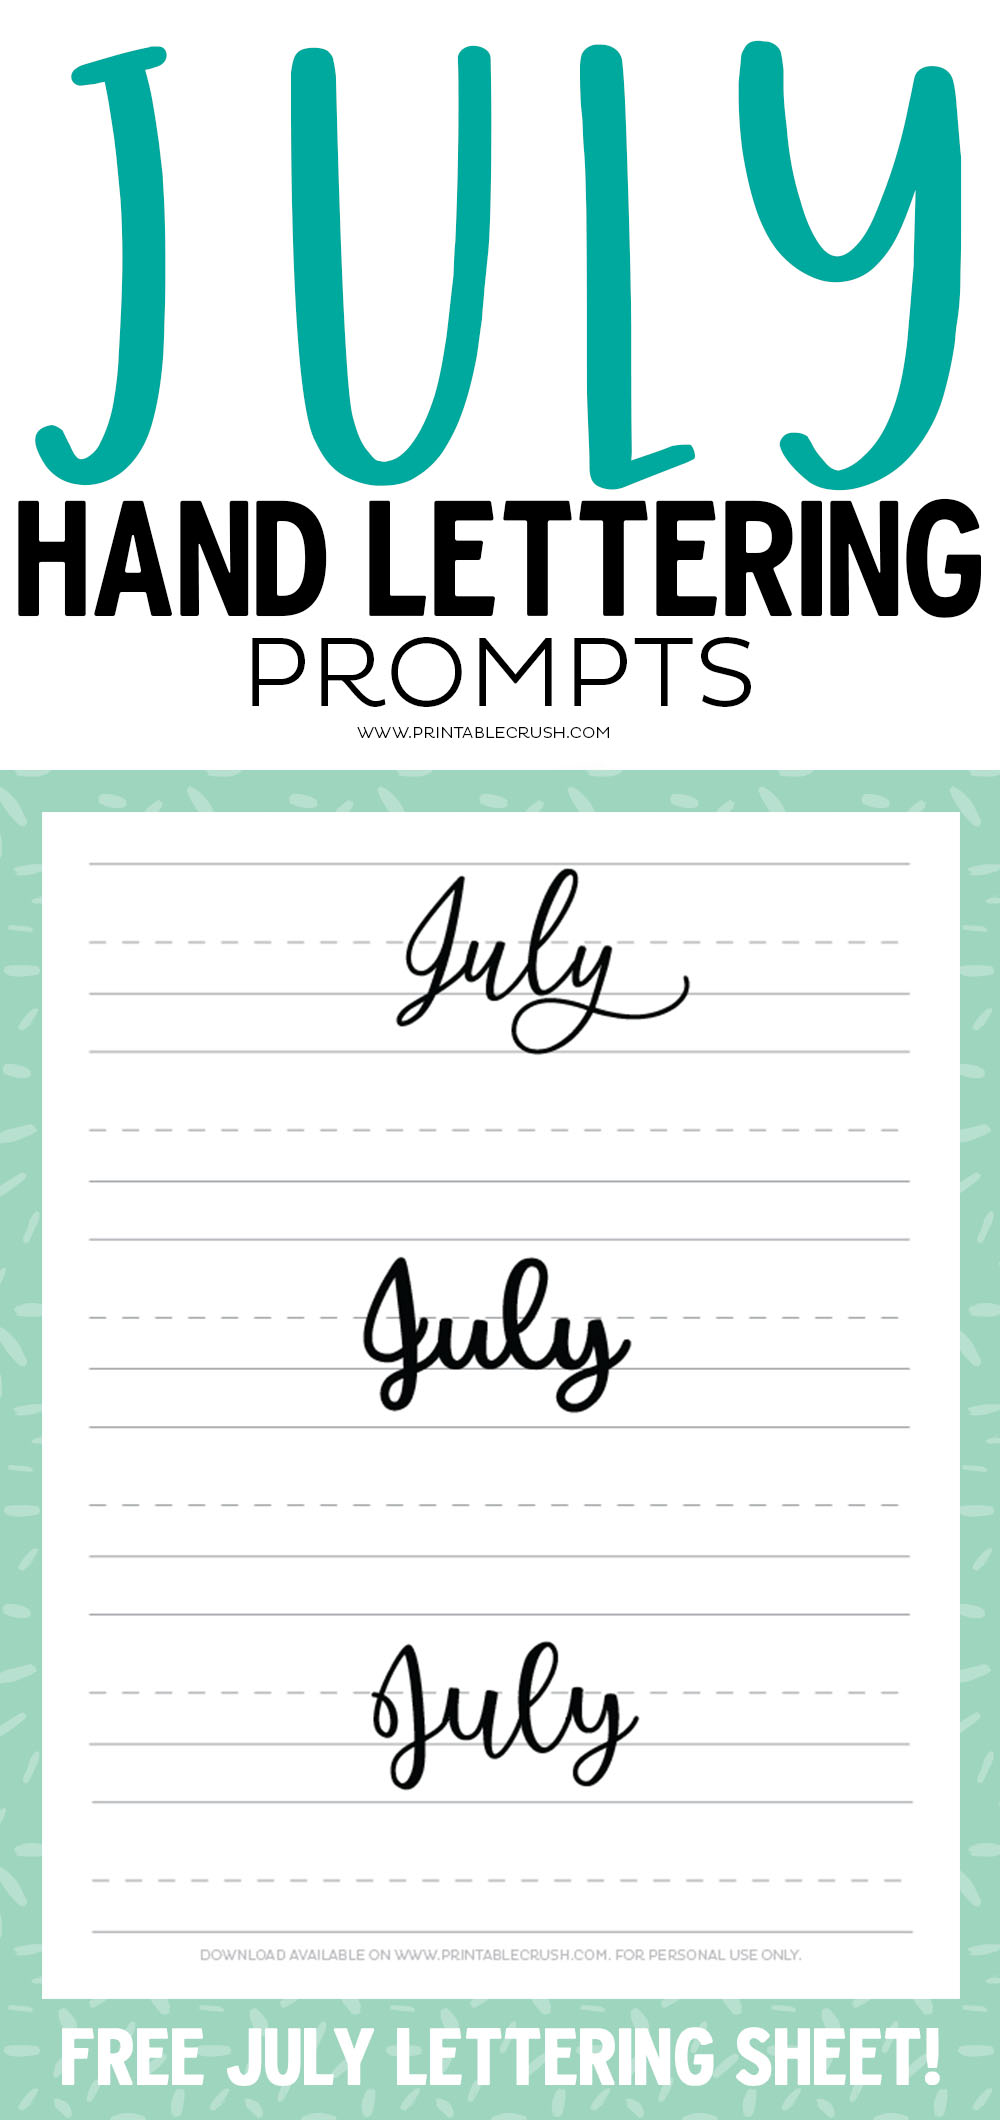 Get 31 Hand Lettering Prompts for July plus a free July hand lettering practice sheet!